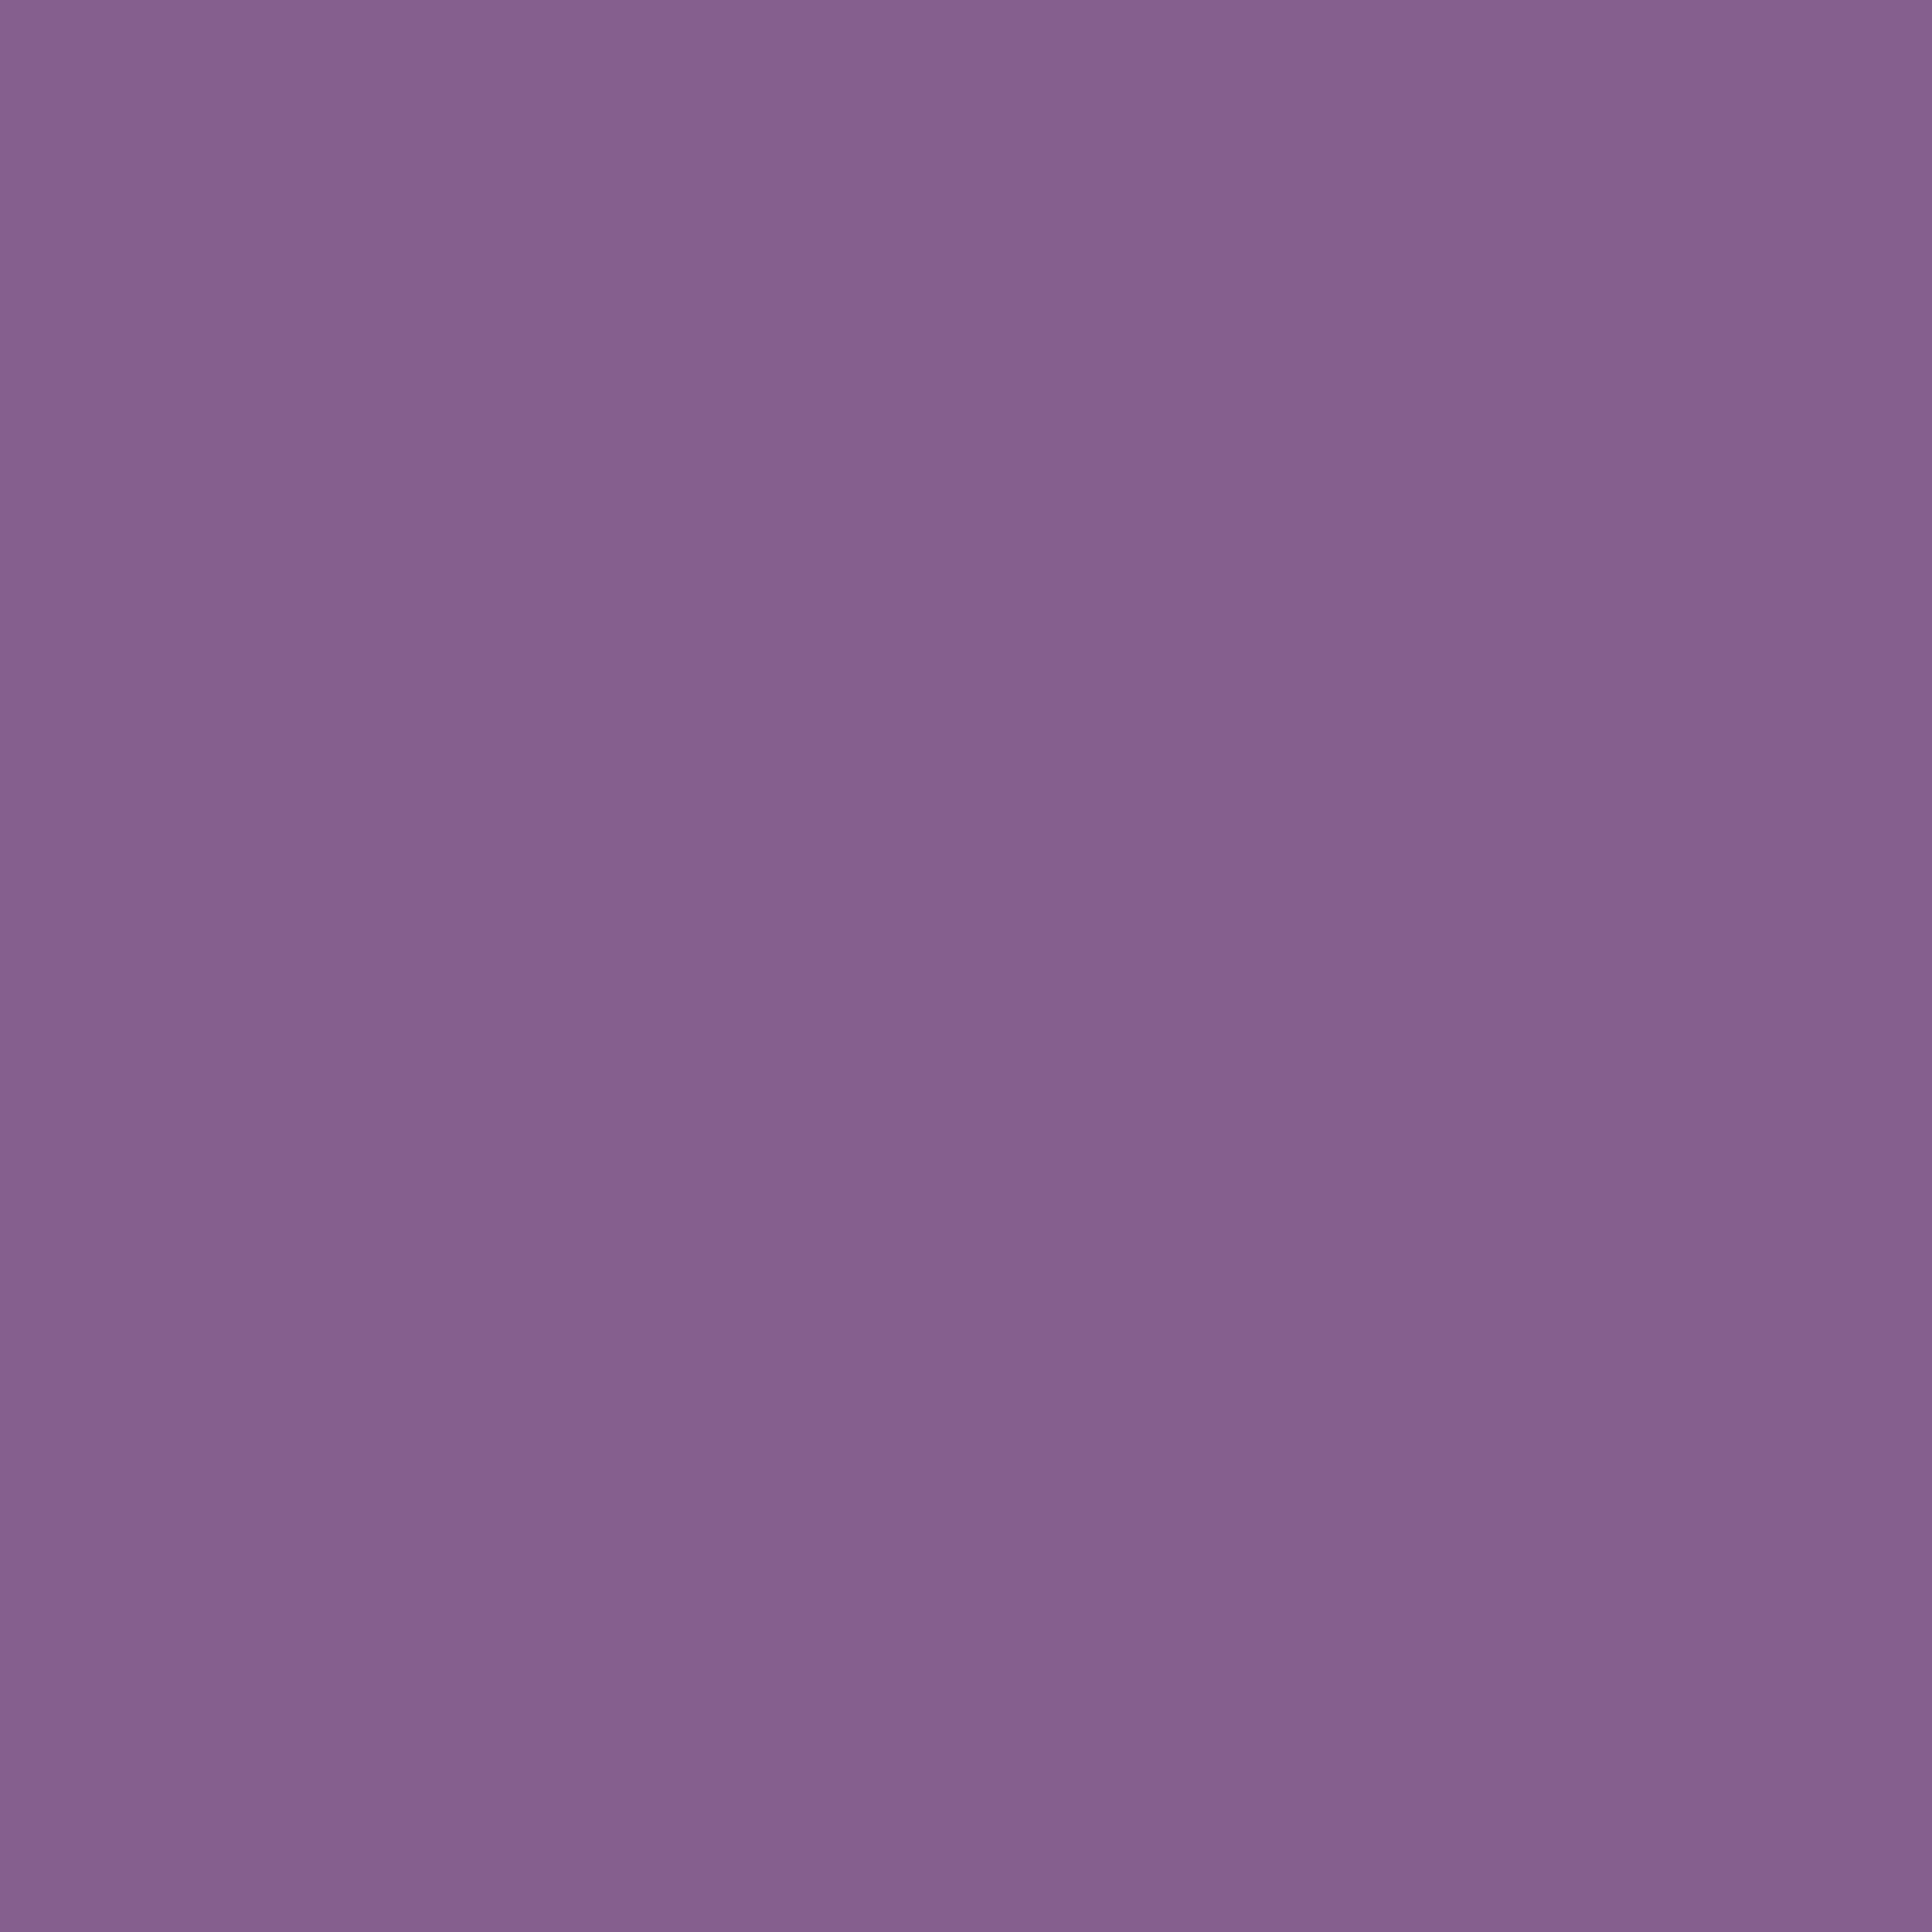 2048x2048 French Lilac Solid Color Background